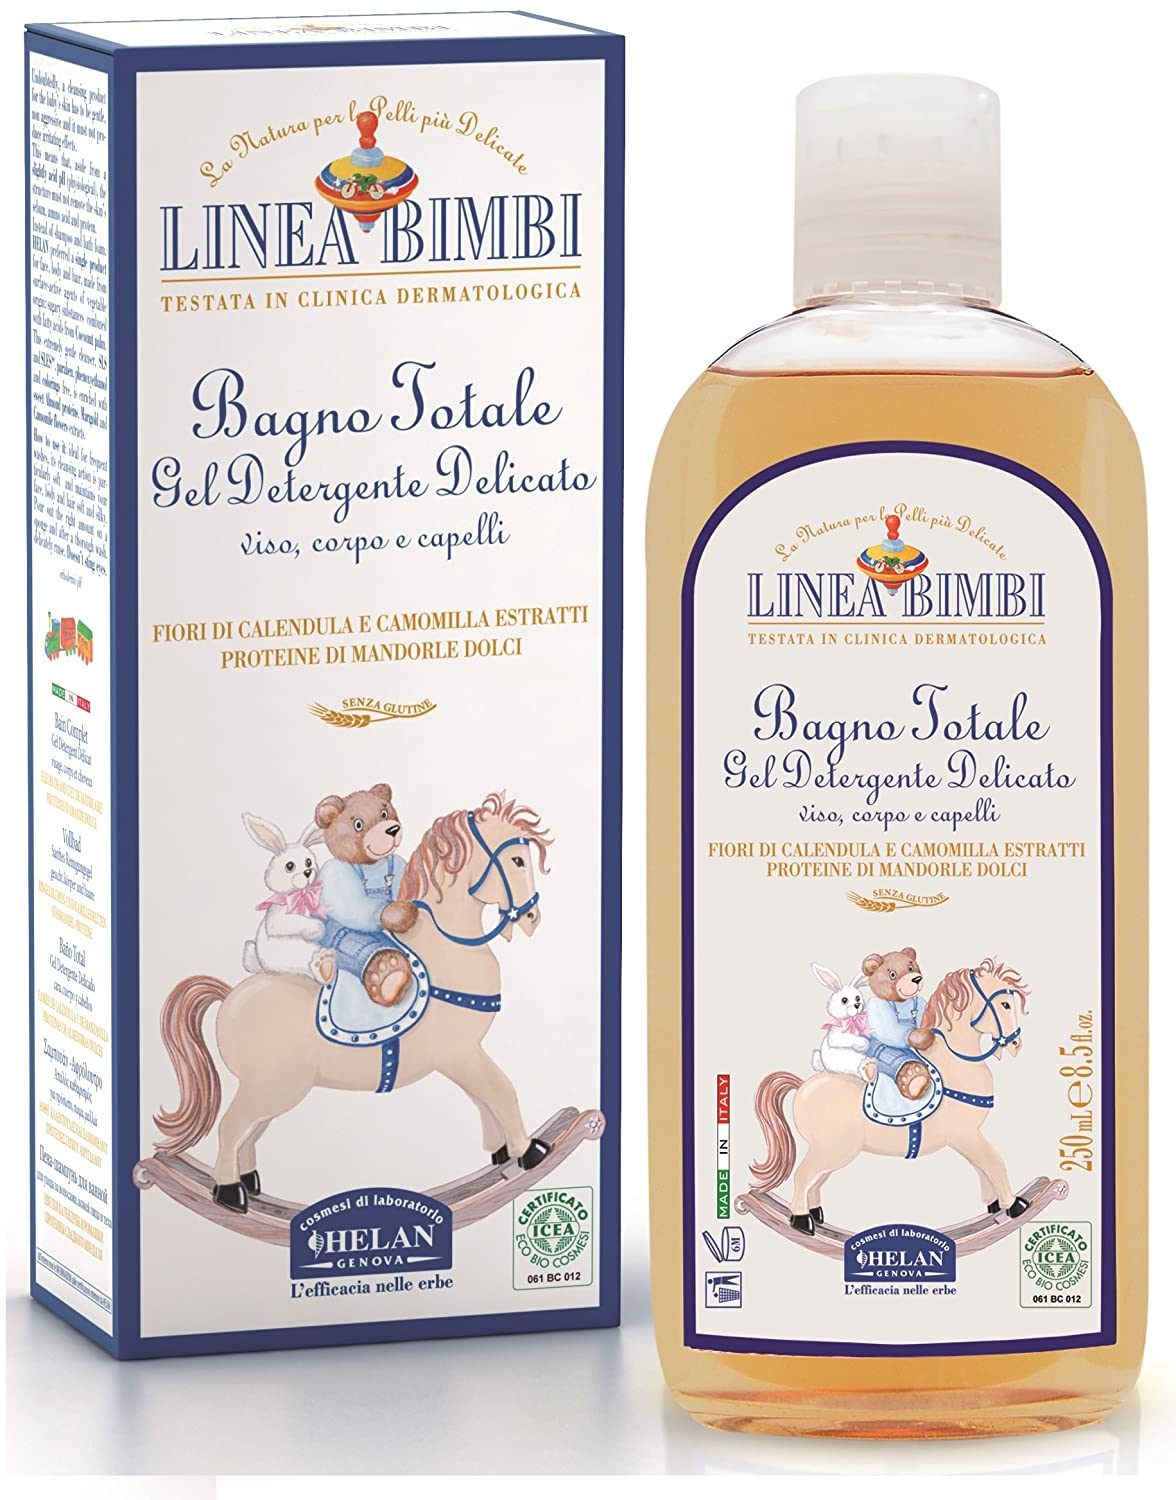 Linea Bimbi Certified Organic 2 in 1 Baby Shampoo Body & Hair Wash for Sensitive Skin No Tears Vegan Friendly Dermatology Tested, 250ml Helan 5060425240103